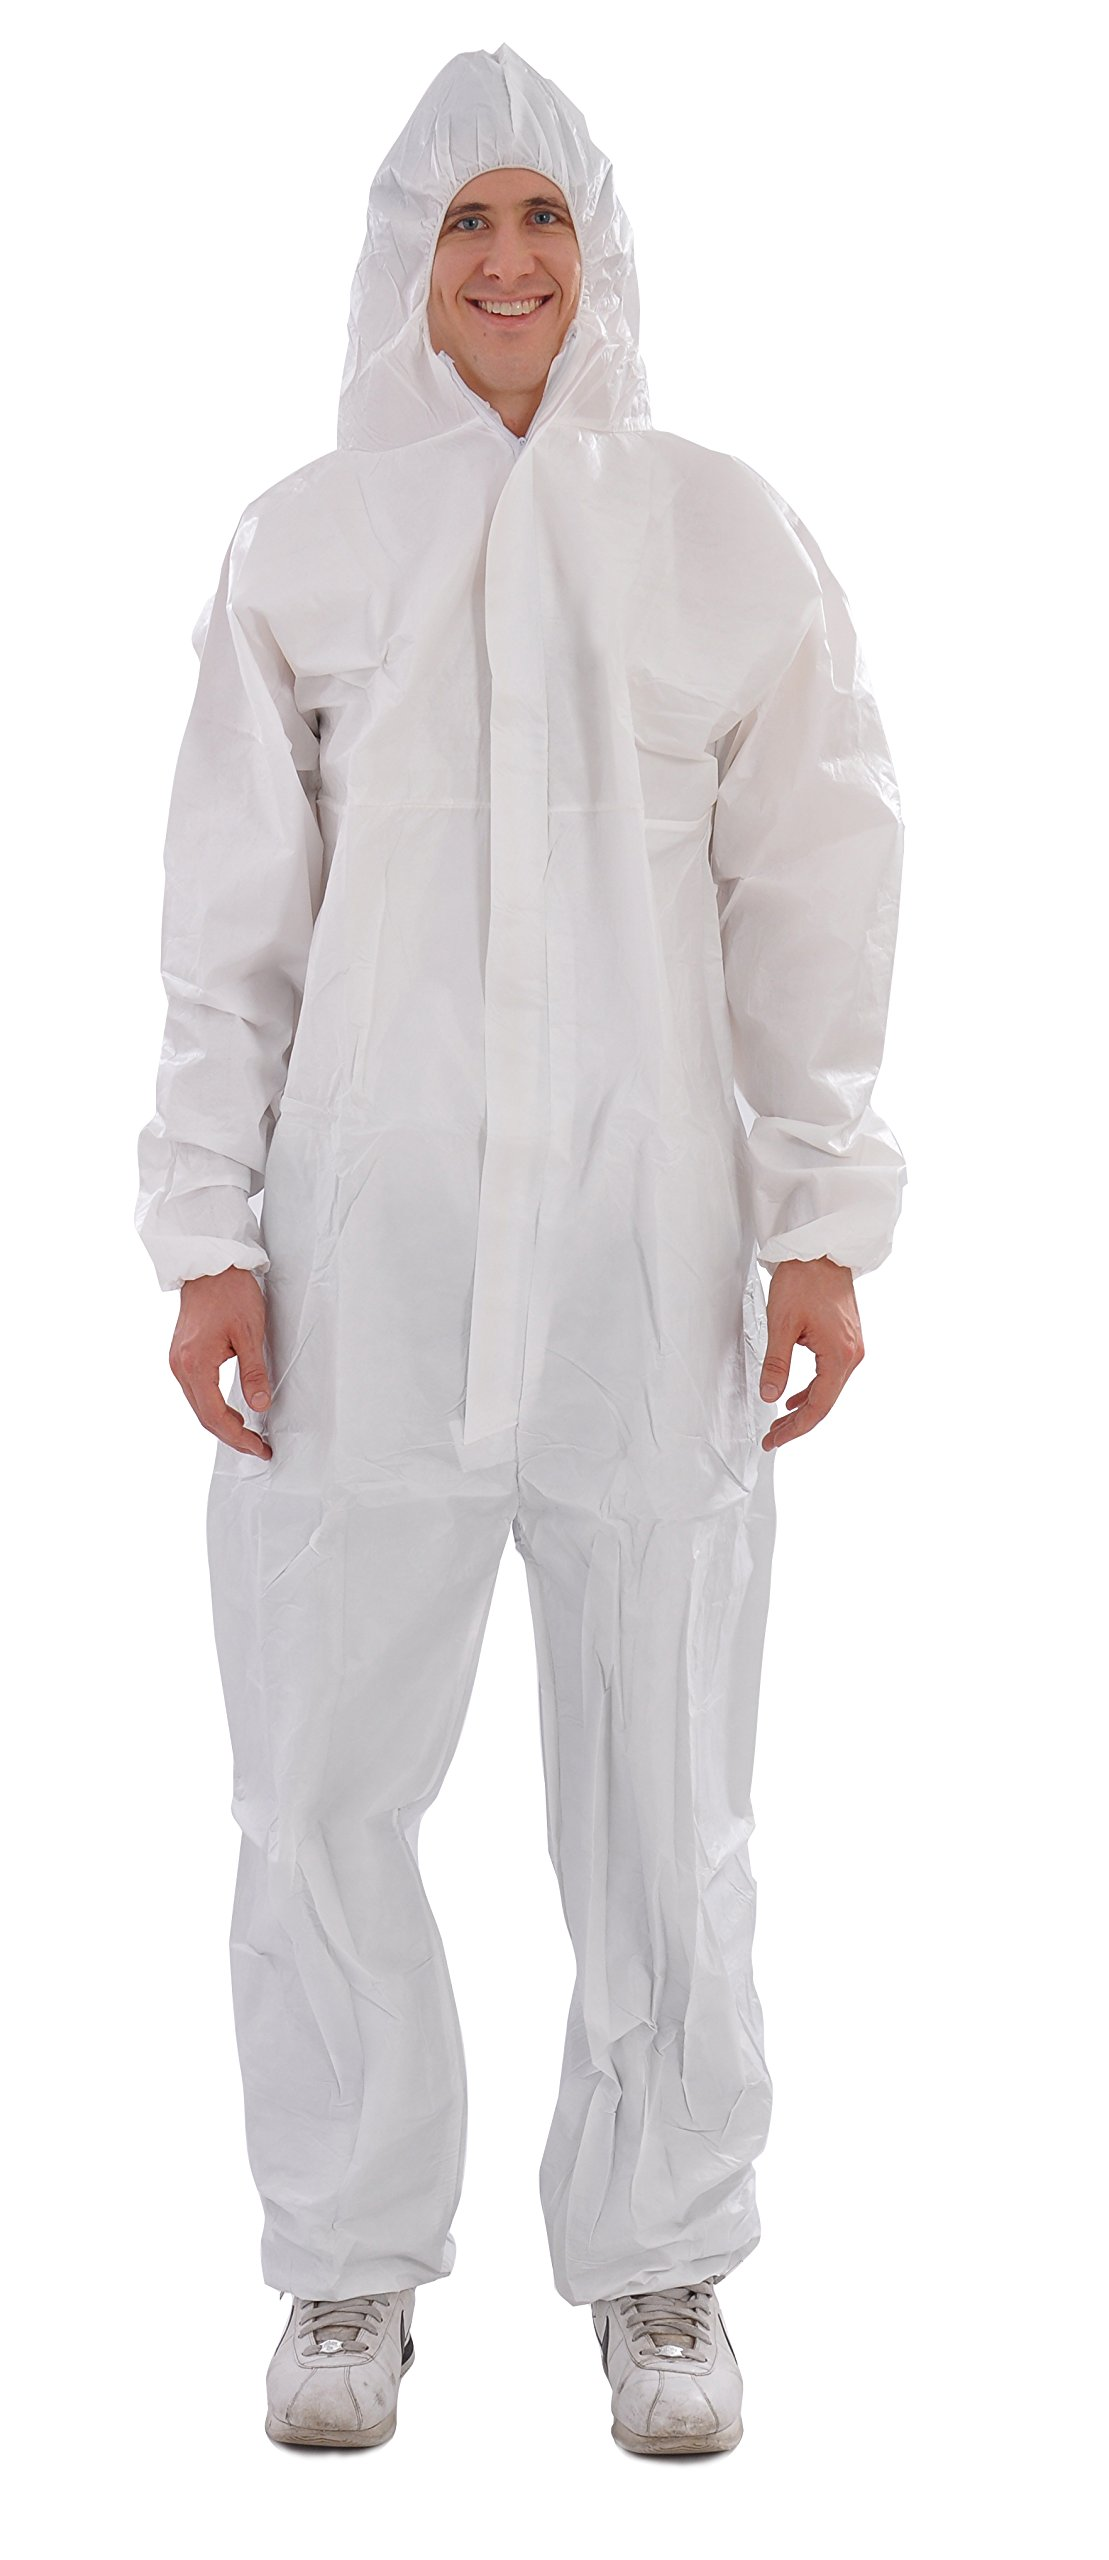 Raygard 30203 Microporous Disposable Coveralls Protective Breathable Hooded Suit with Elastic Cuffs, Ankles and Waist,Zip Front Opening, Serged Seams for Spray Paint Chemical Industrial(Large, White)